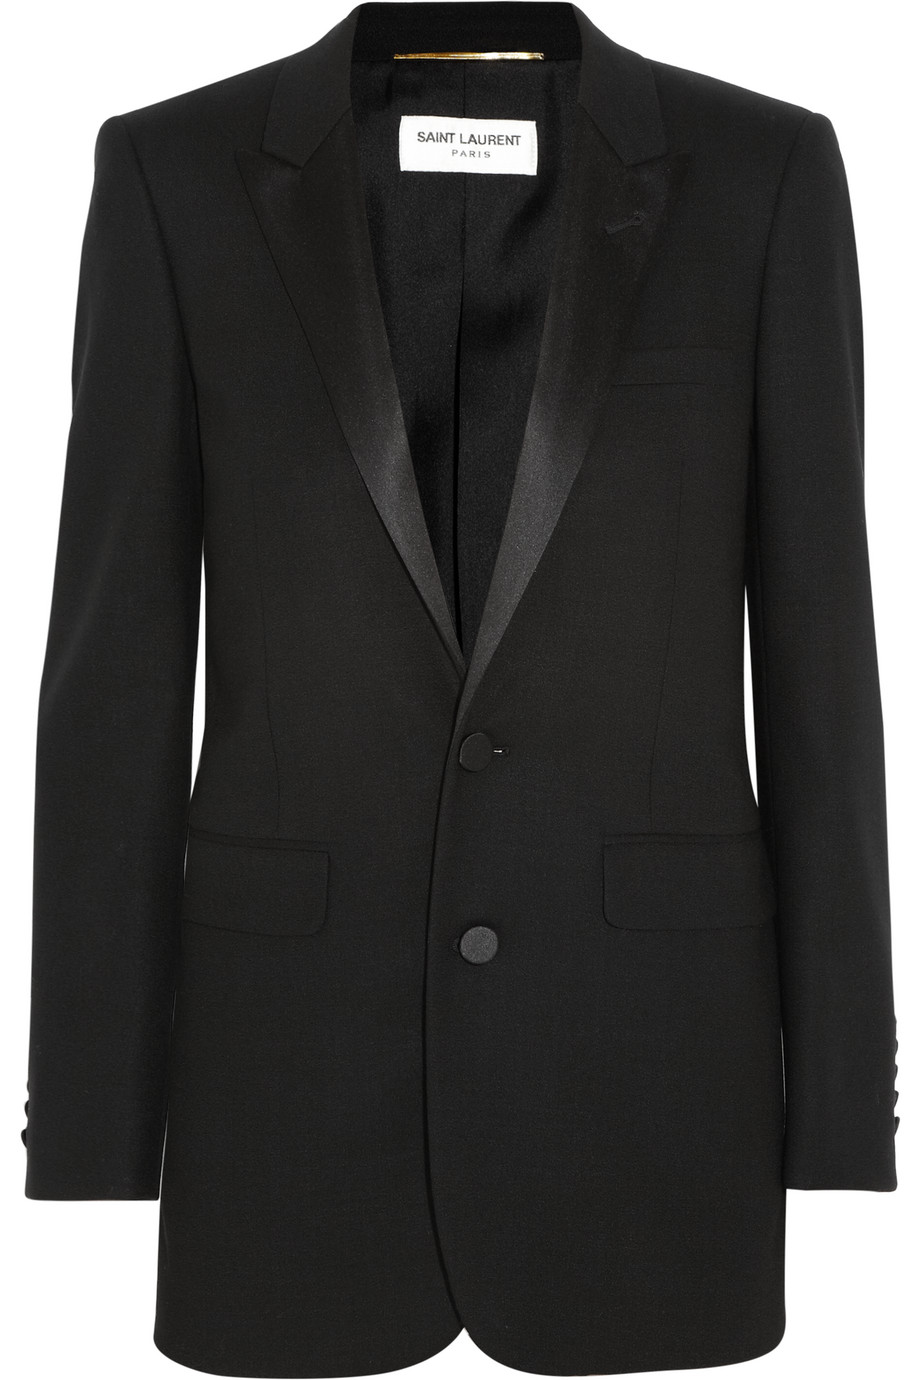 Saint Laurent Satin-Trimmed Wool-Crepe Tuxedo Blazer, Black, Women's, Size: 42